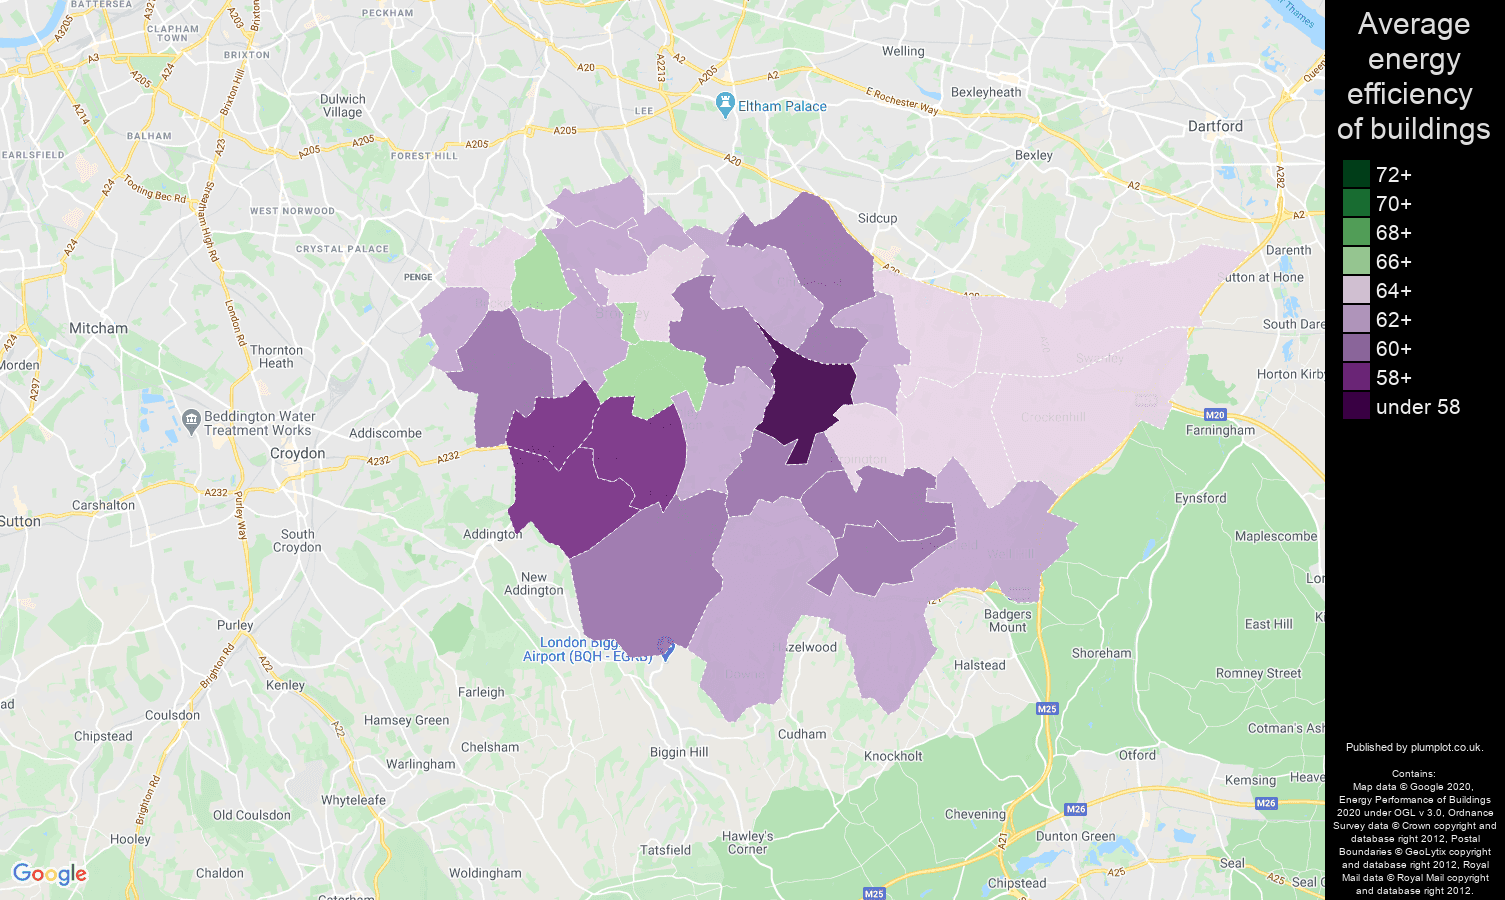 Bromley map of energy efficiency of properties